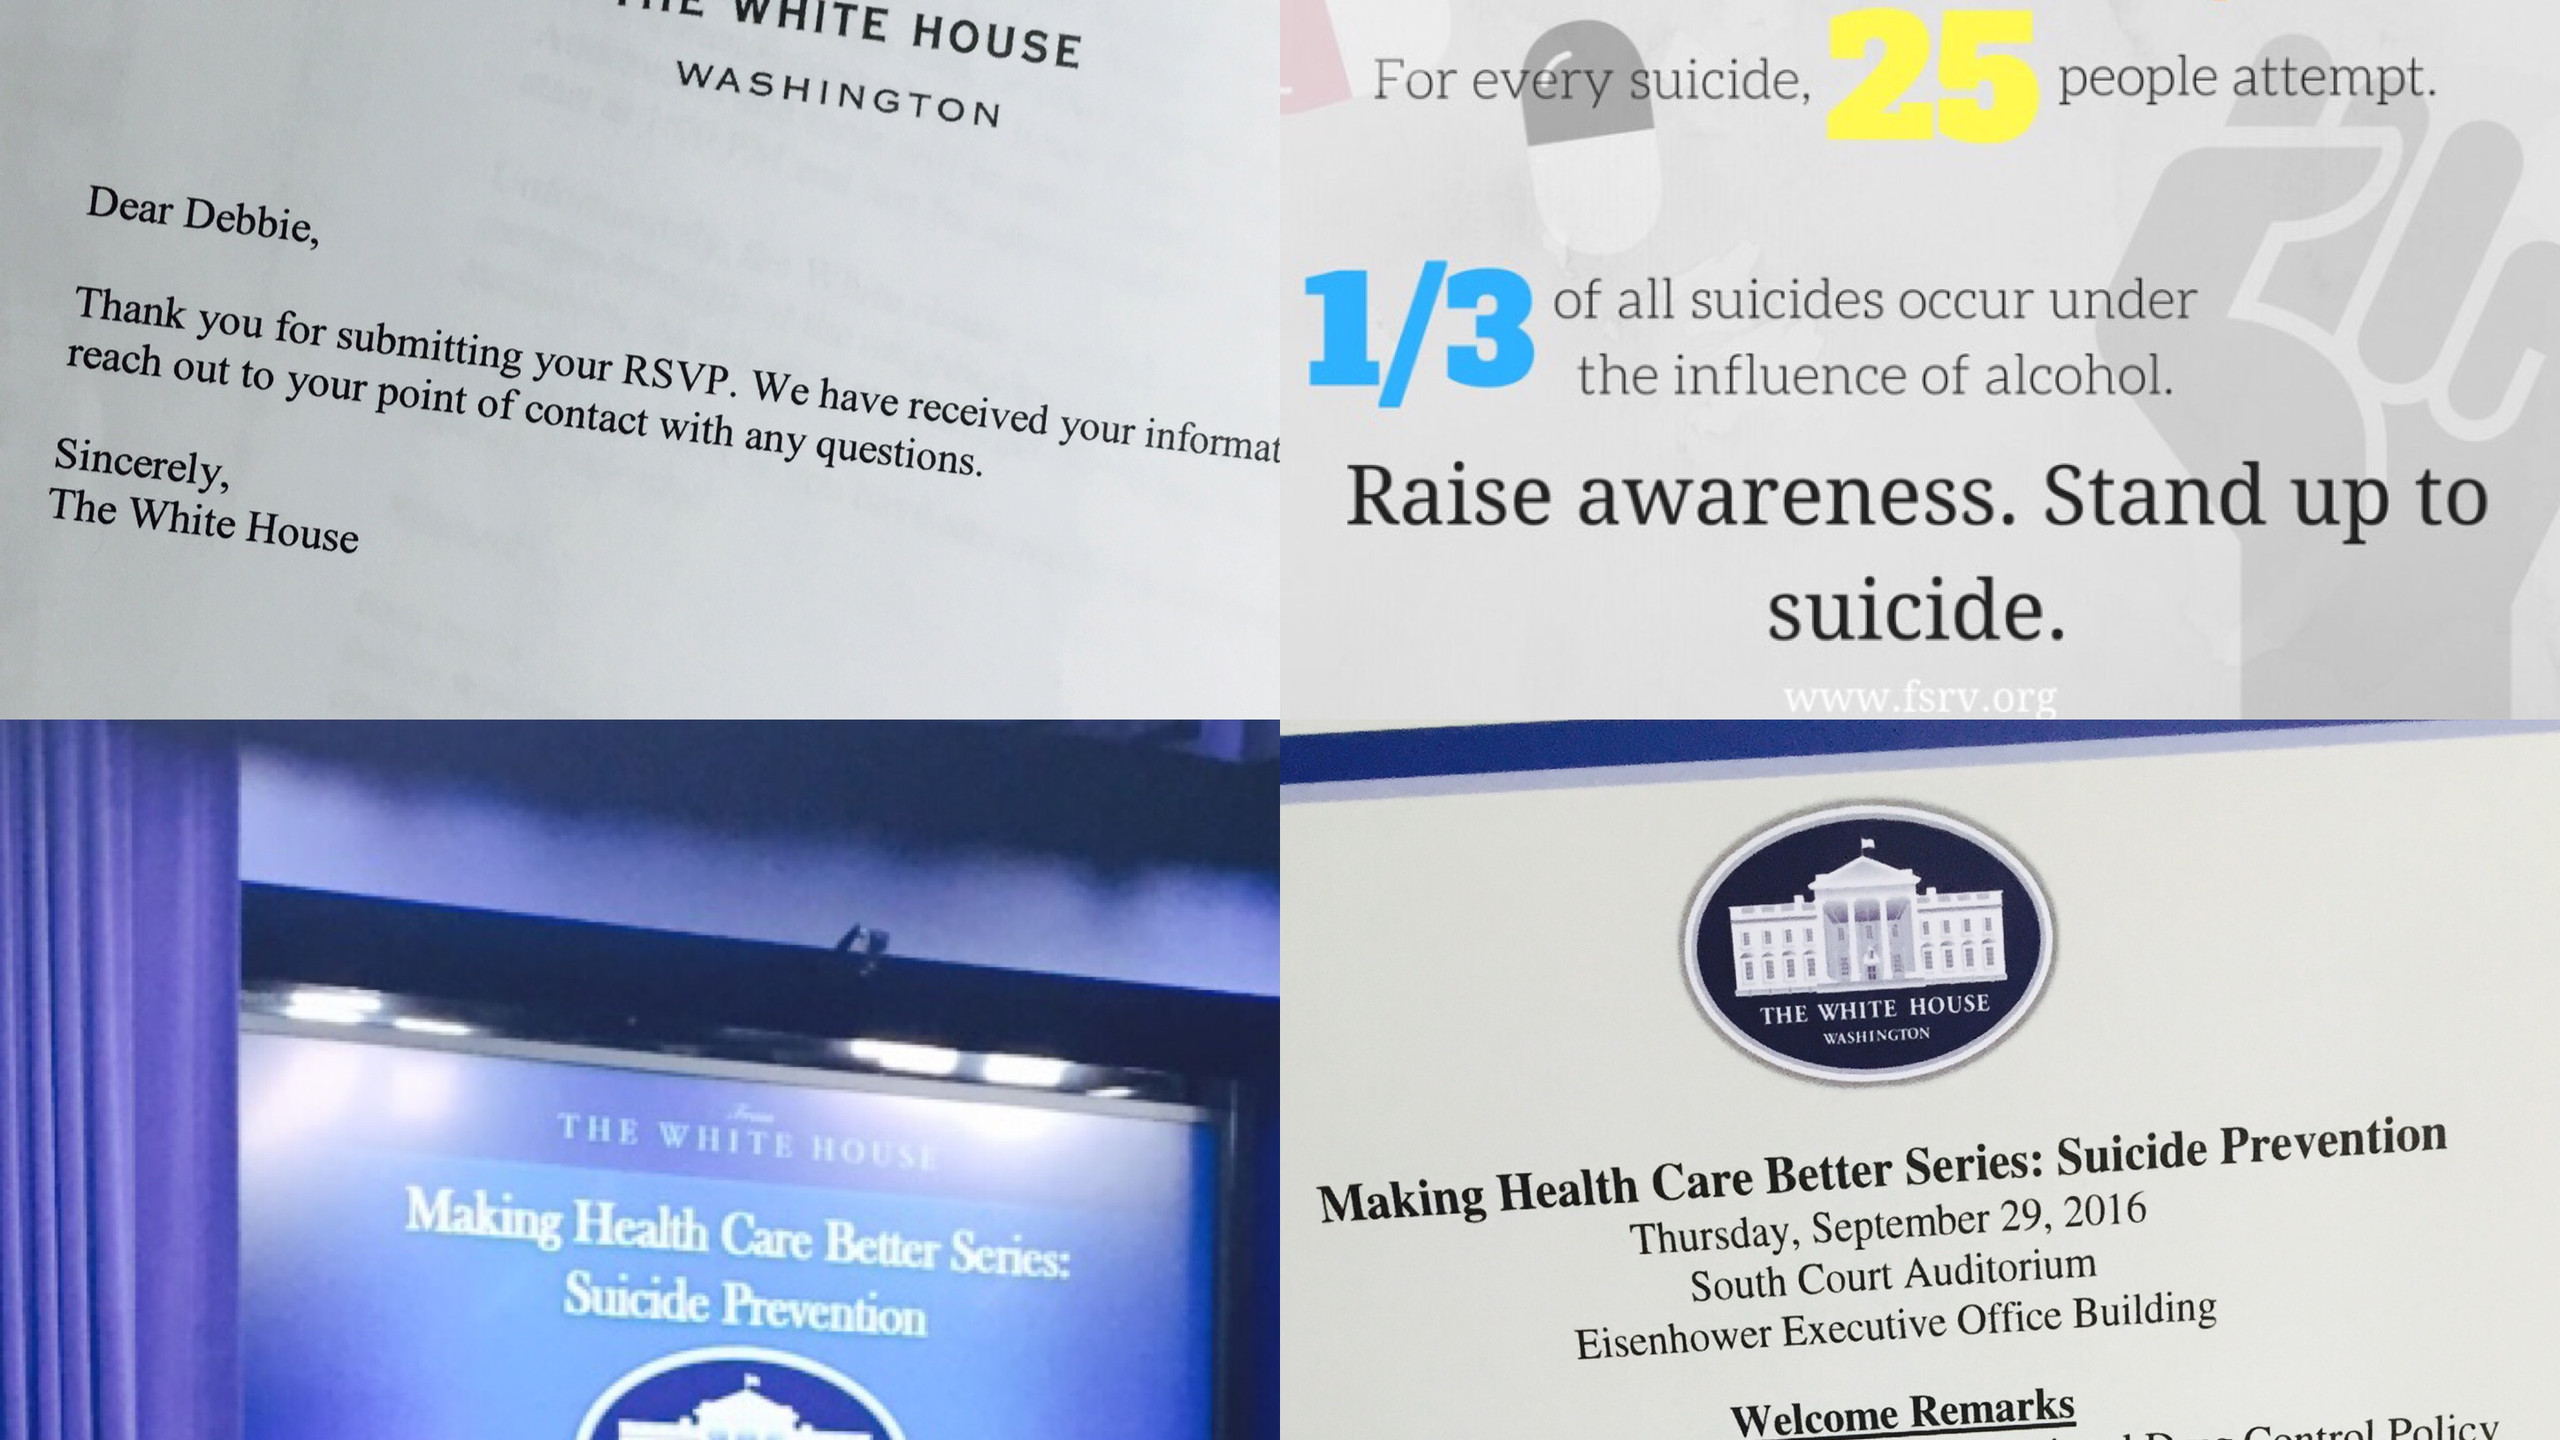 White House Suicide Prevention Event